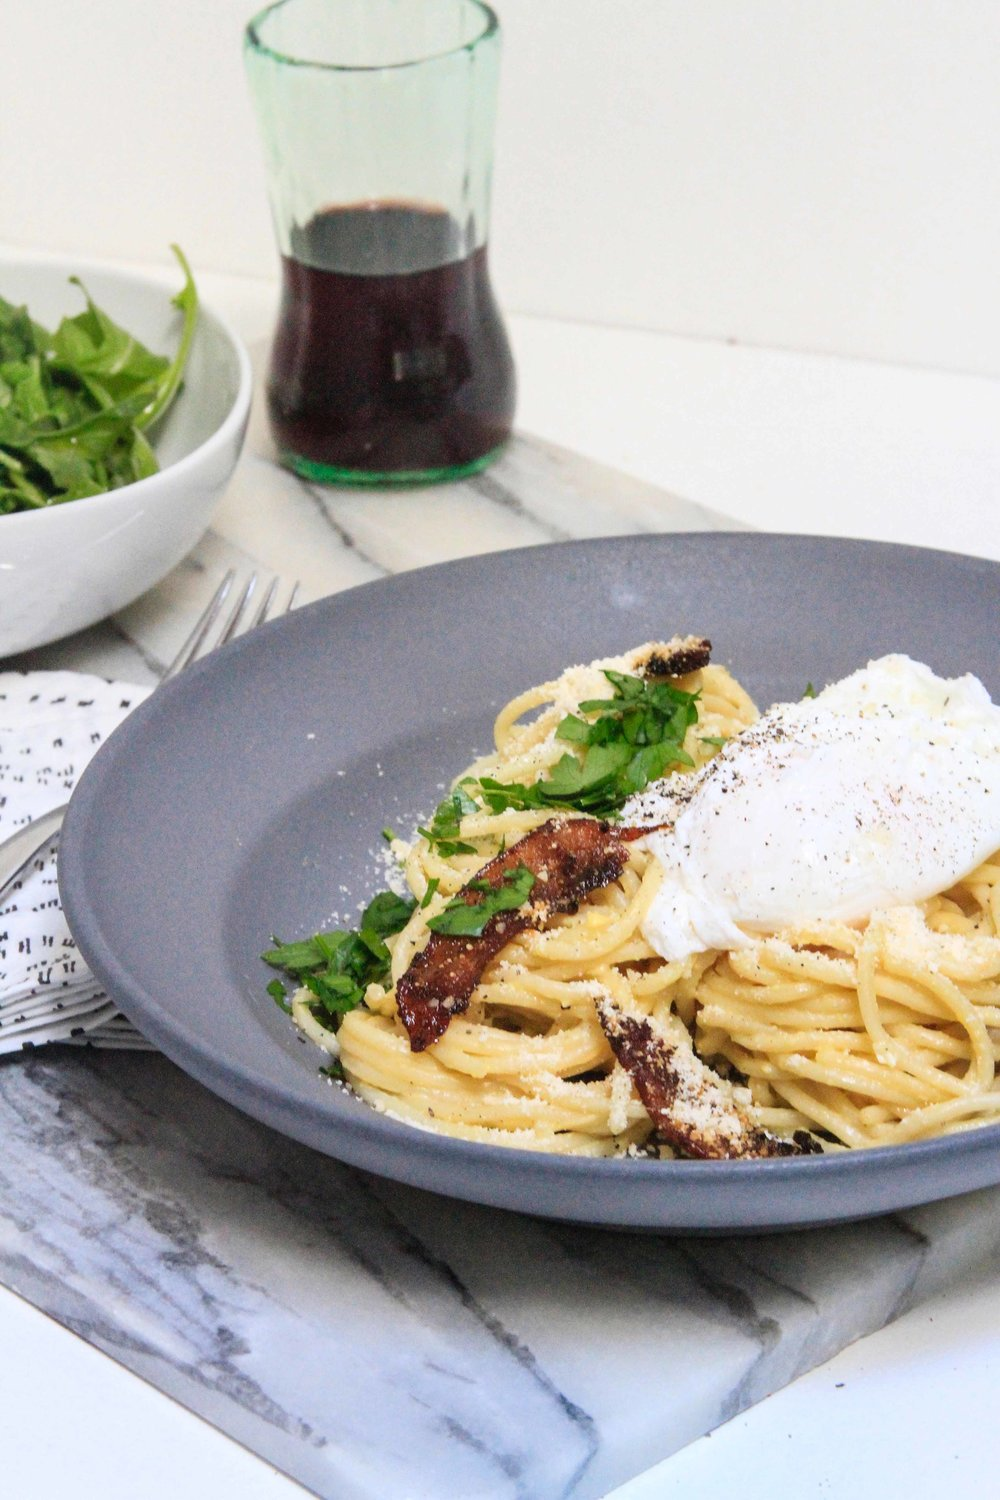 Spaghetti carbonara with a poached egg